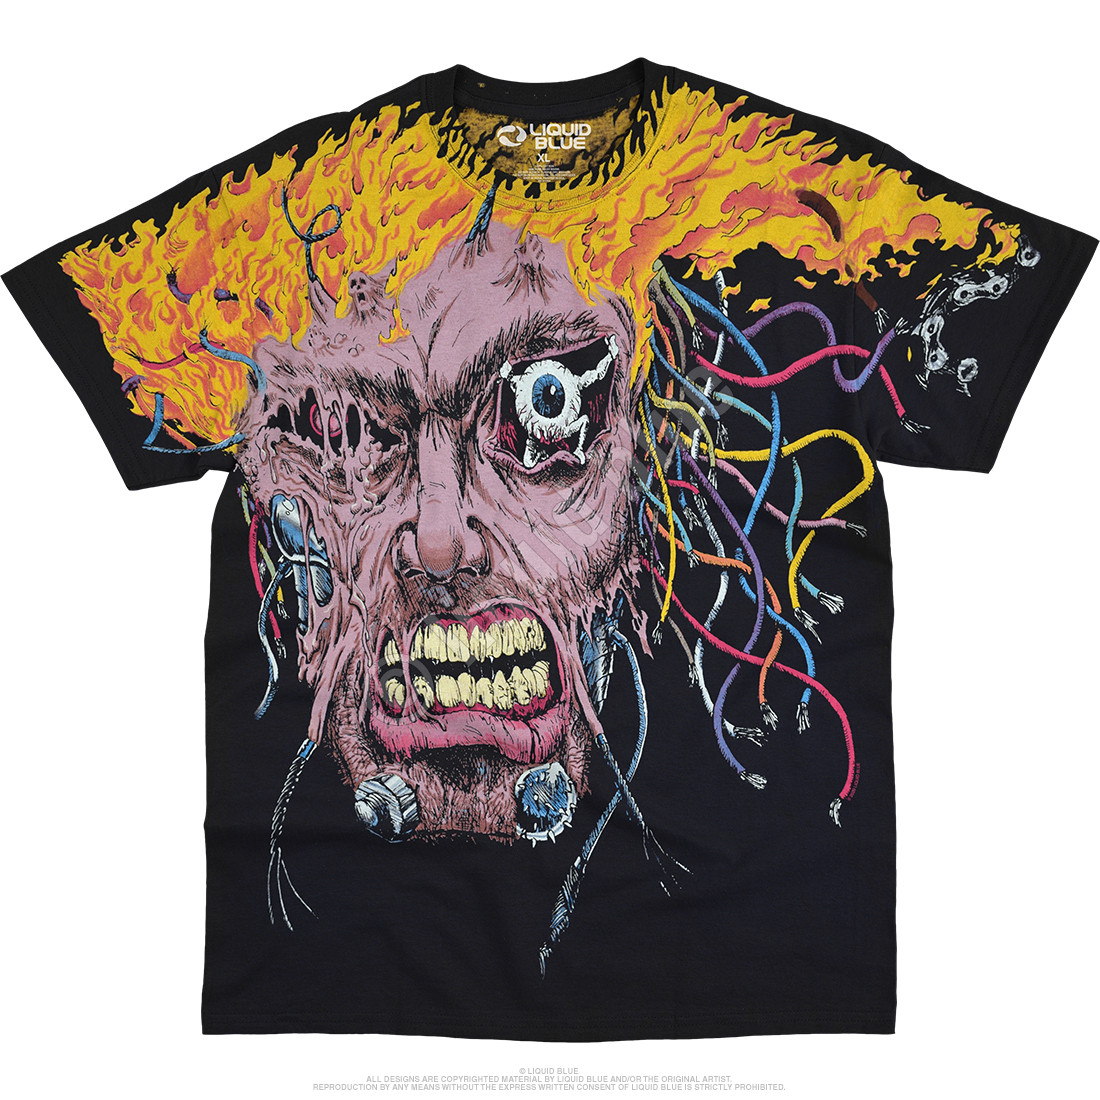 Overload Black T-Shirt